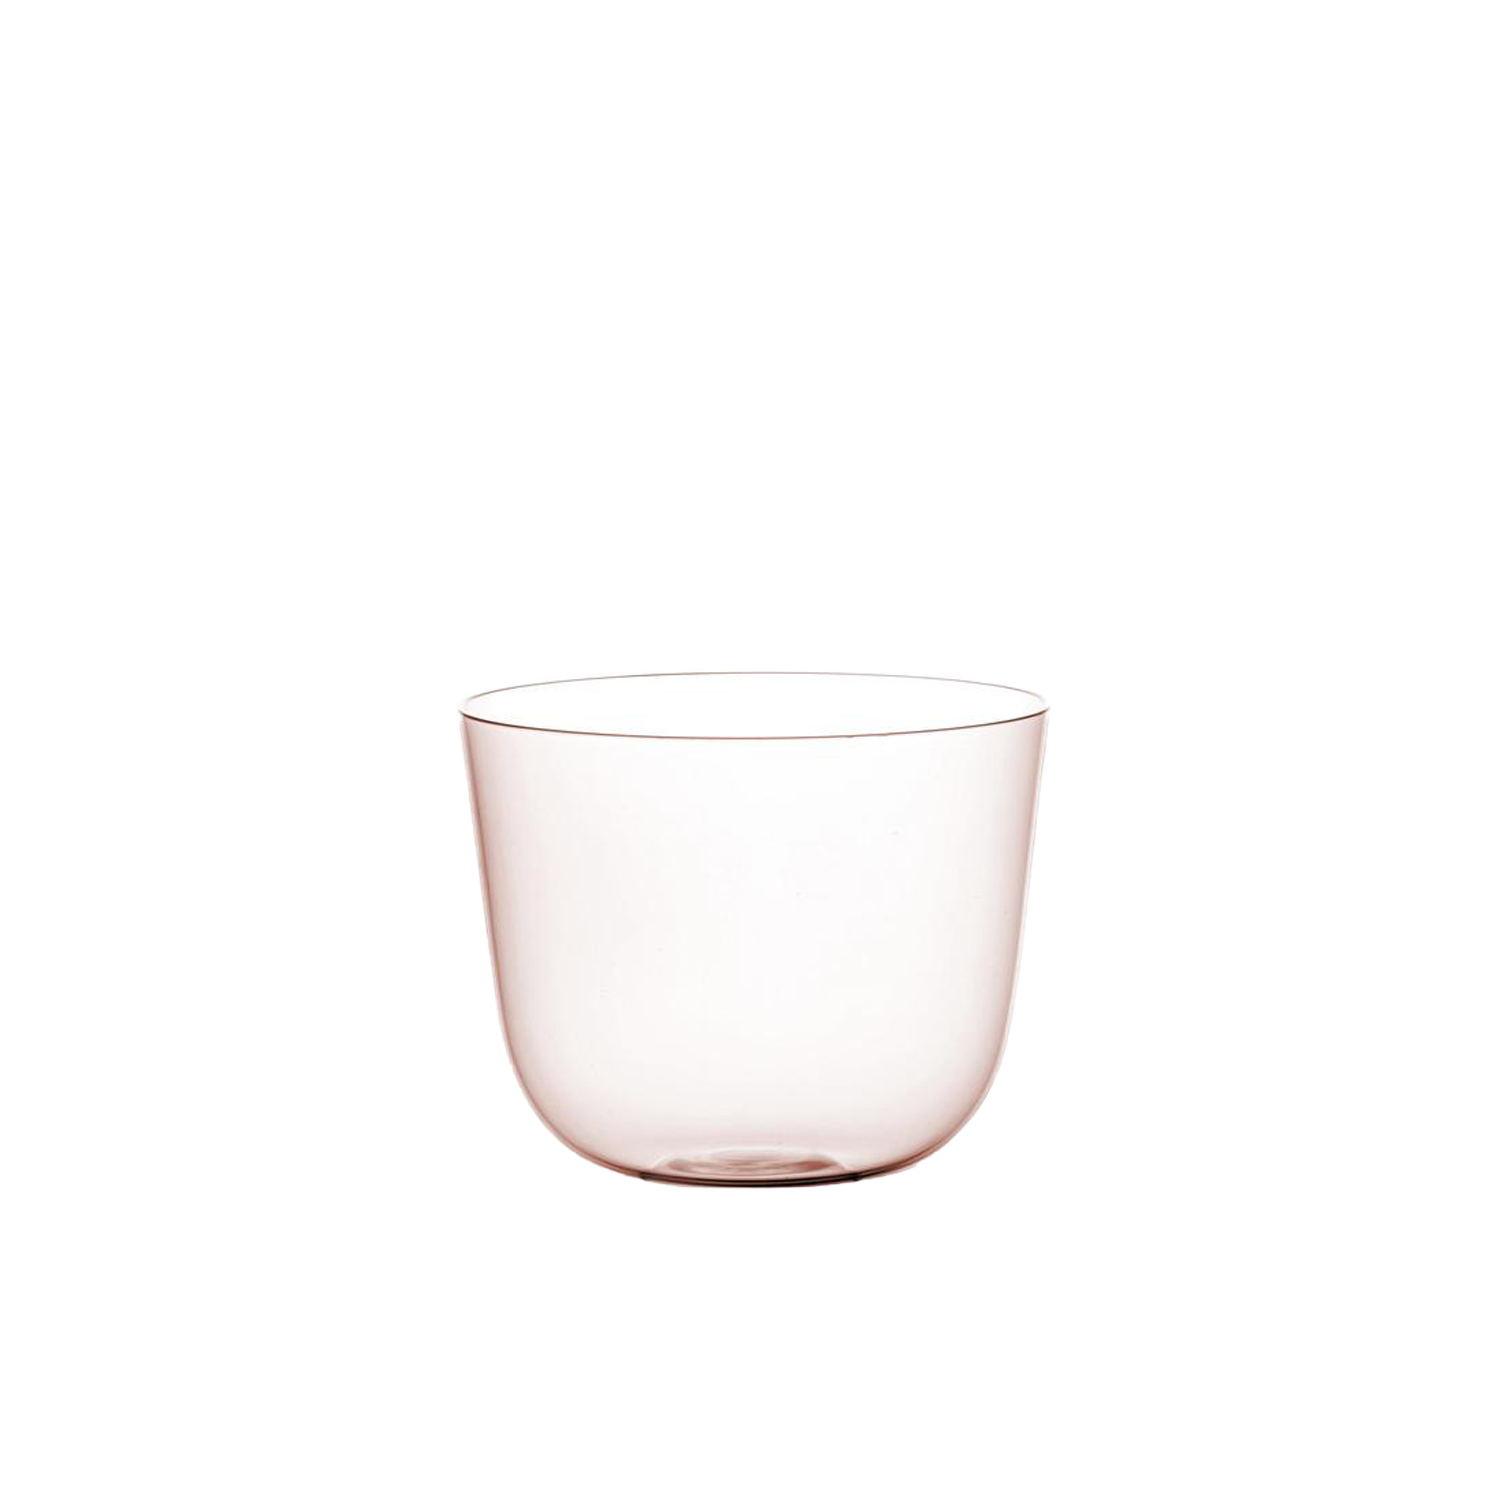 """Drinking Set No.267 Alpha Flower Bowl - Set of 6 - The enforced shape of the """"Alpha"""" set, which fits snugly into the hand, is inspired by a copper beaker from the Middle Ages on show at the MAK/Vienna. The copper beaker was, in turn, inspired by Islamic shapes. The """"Alpha Beaker"""" was very much a product of the 1950s, stackable and ideal for young families who need products that are both elegant and practical. 